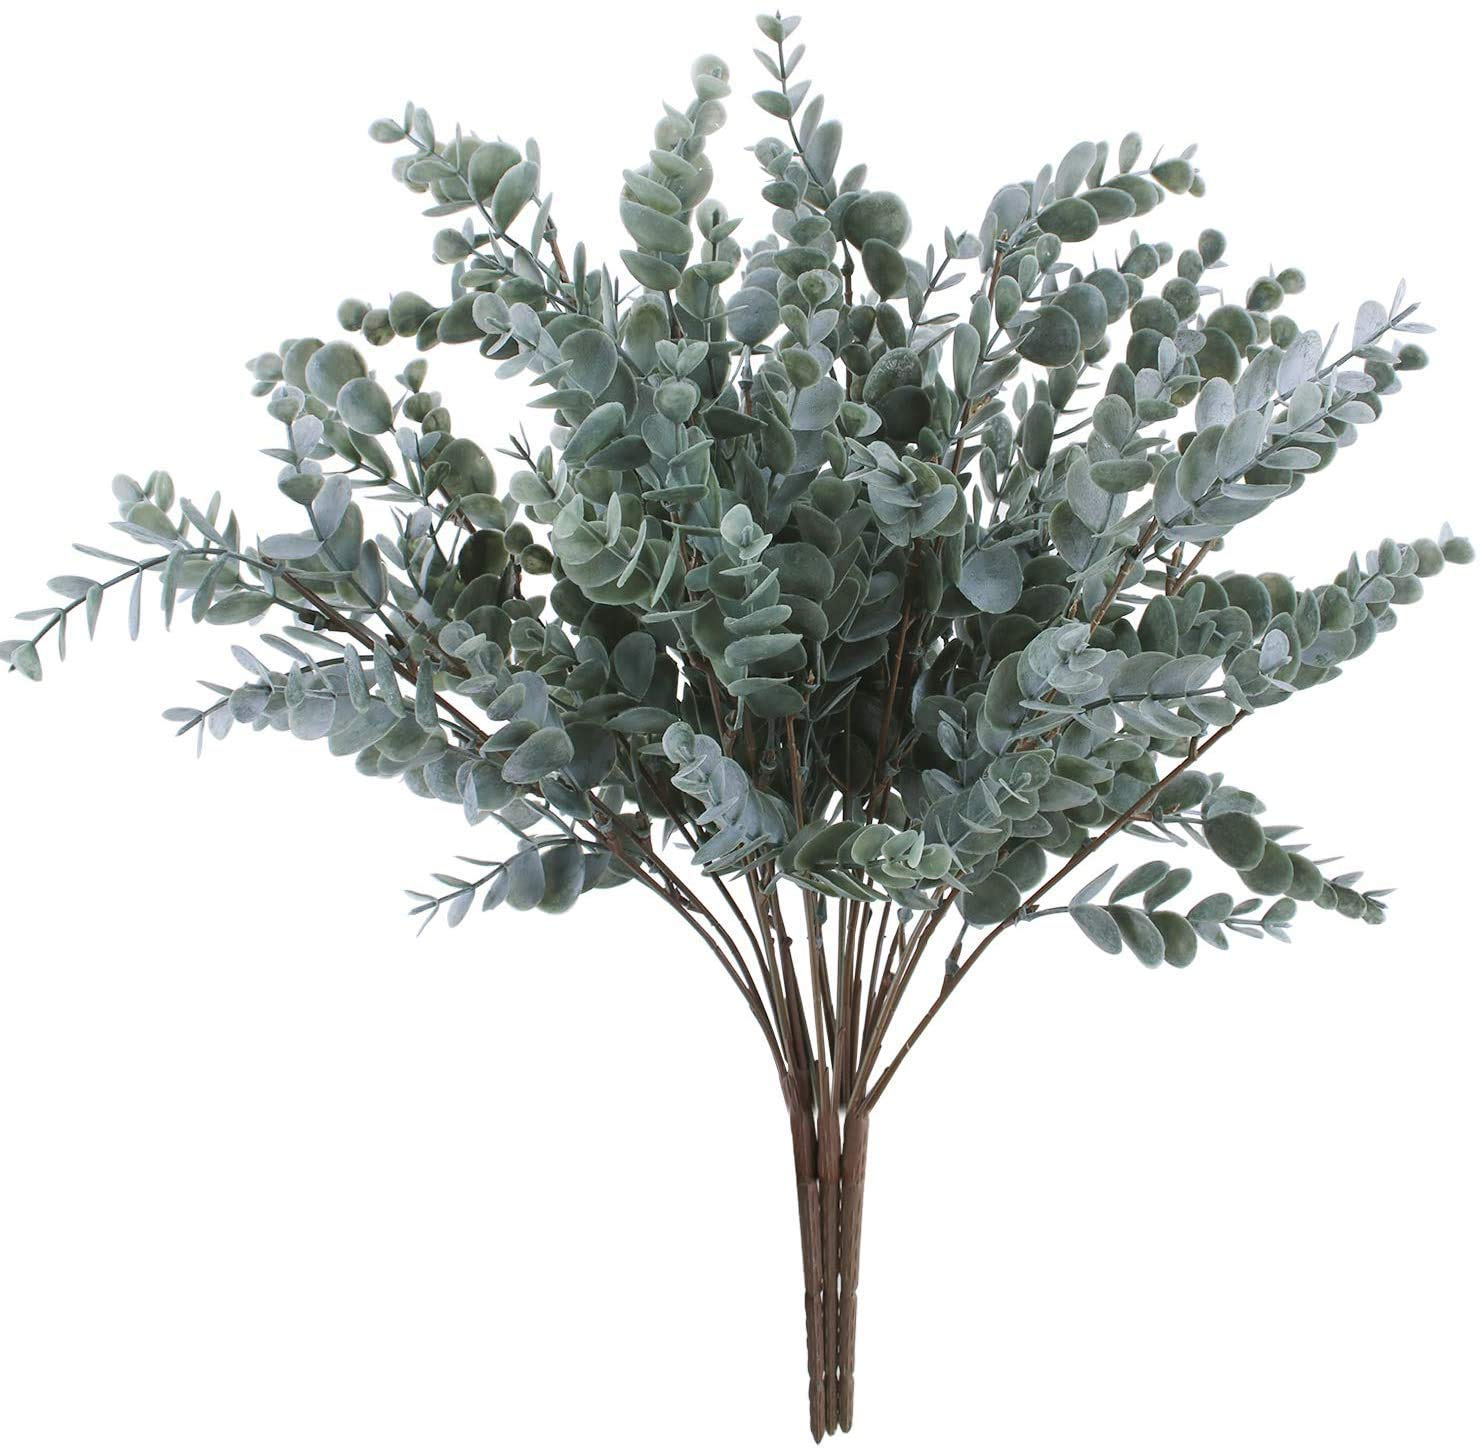 "OUTLEE Pack of 3 Artificial Eucalyptus Stem Shrub Faux Eucalyptus Leaves Spray Artificial Greenery Stems Fake Silver Dollar Branches Plants for Home Wedding Decor 17.7"" Tall"